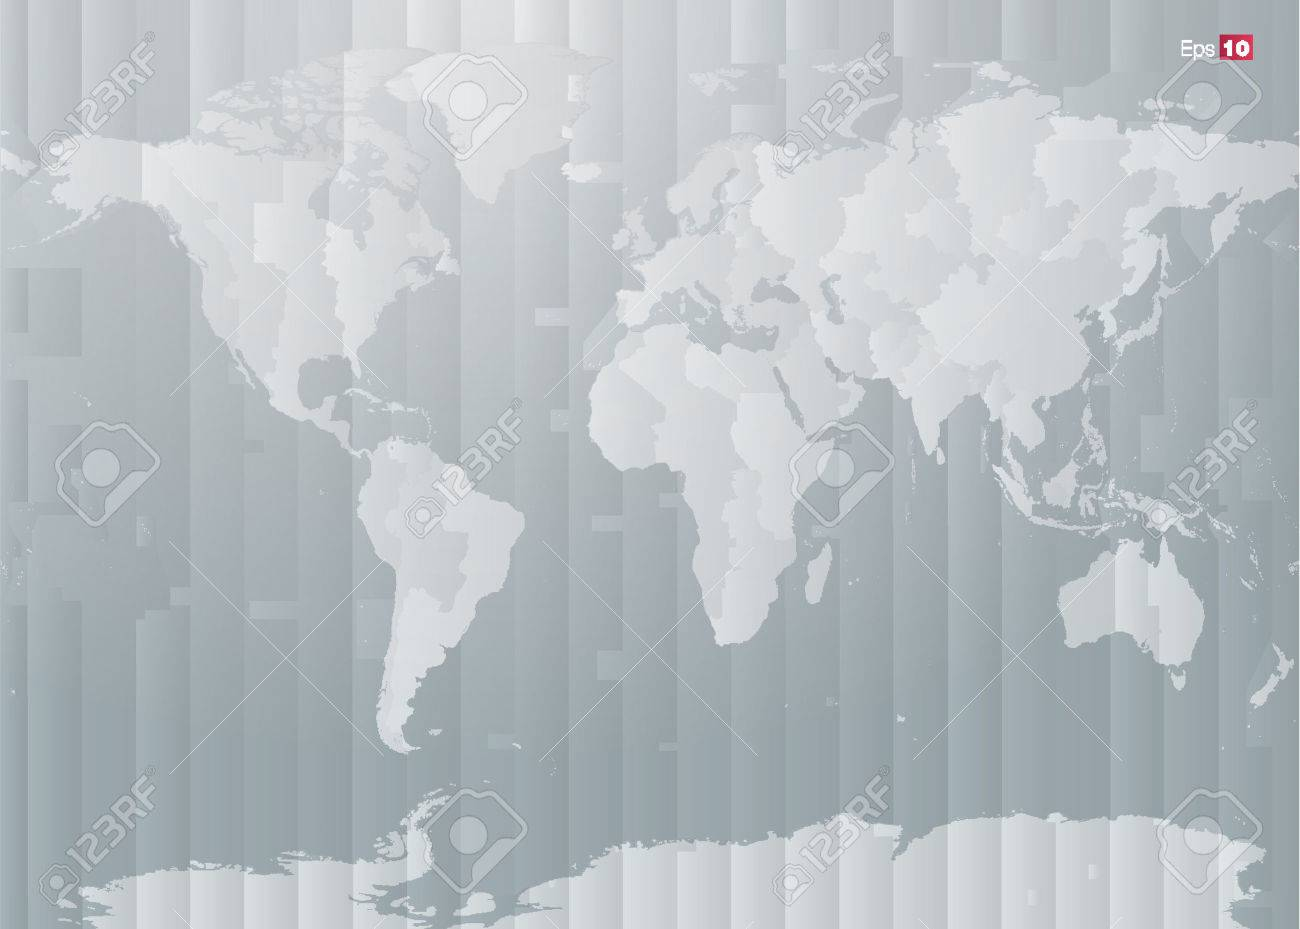 World map with countries and timezones in editable vector format vector world map with countries and timezones in editable vector format gumiabroncs Choice Image